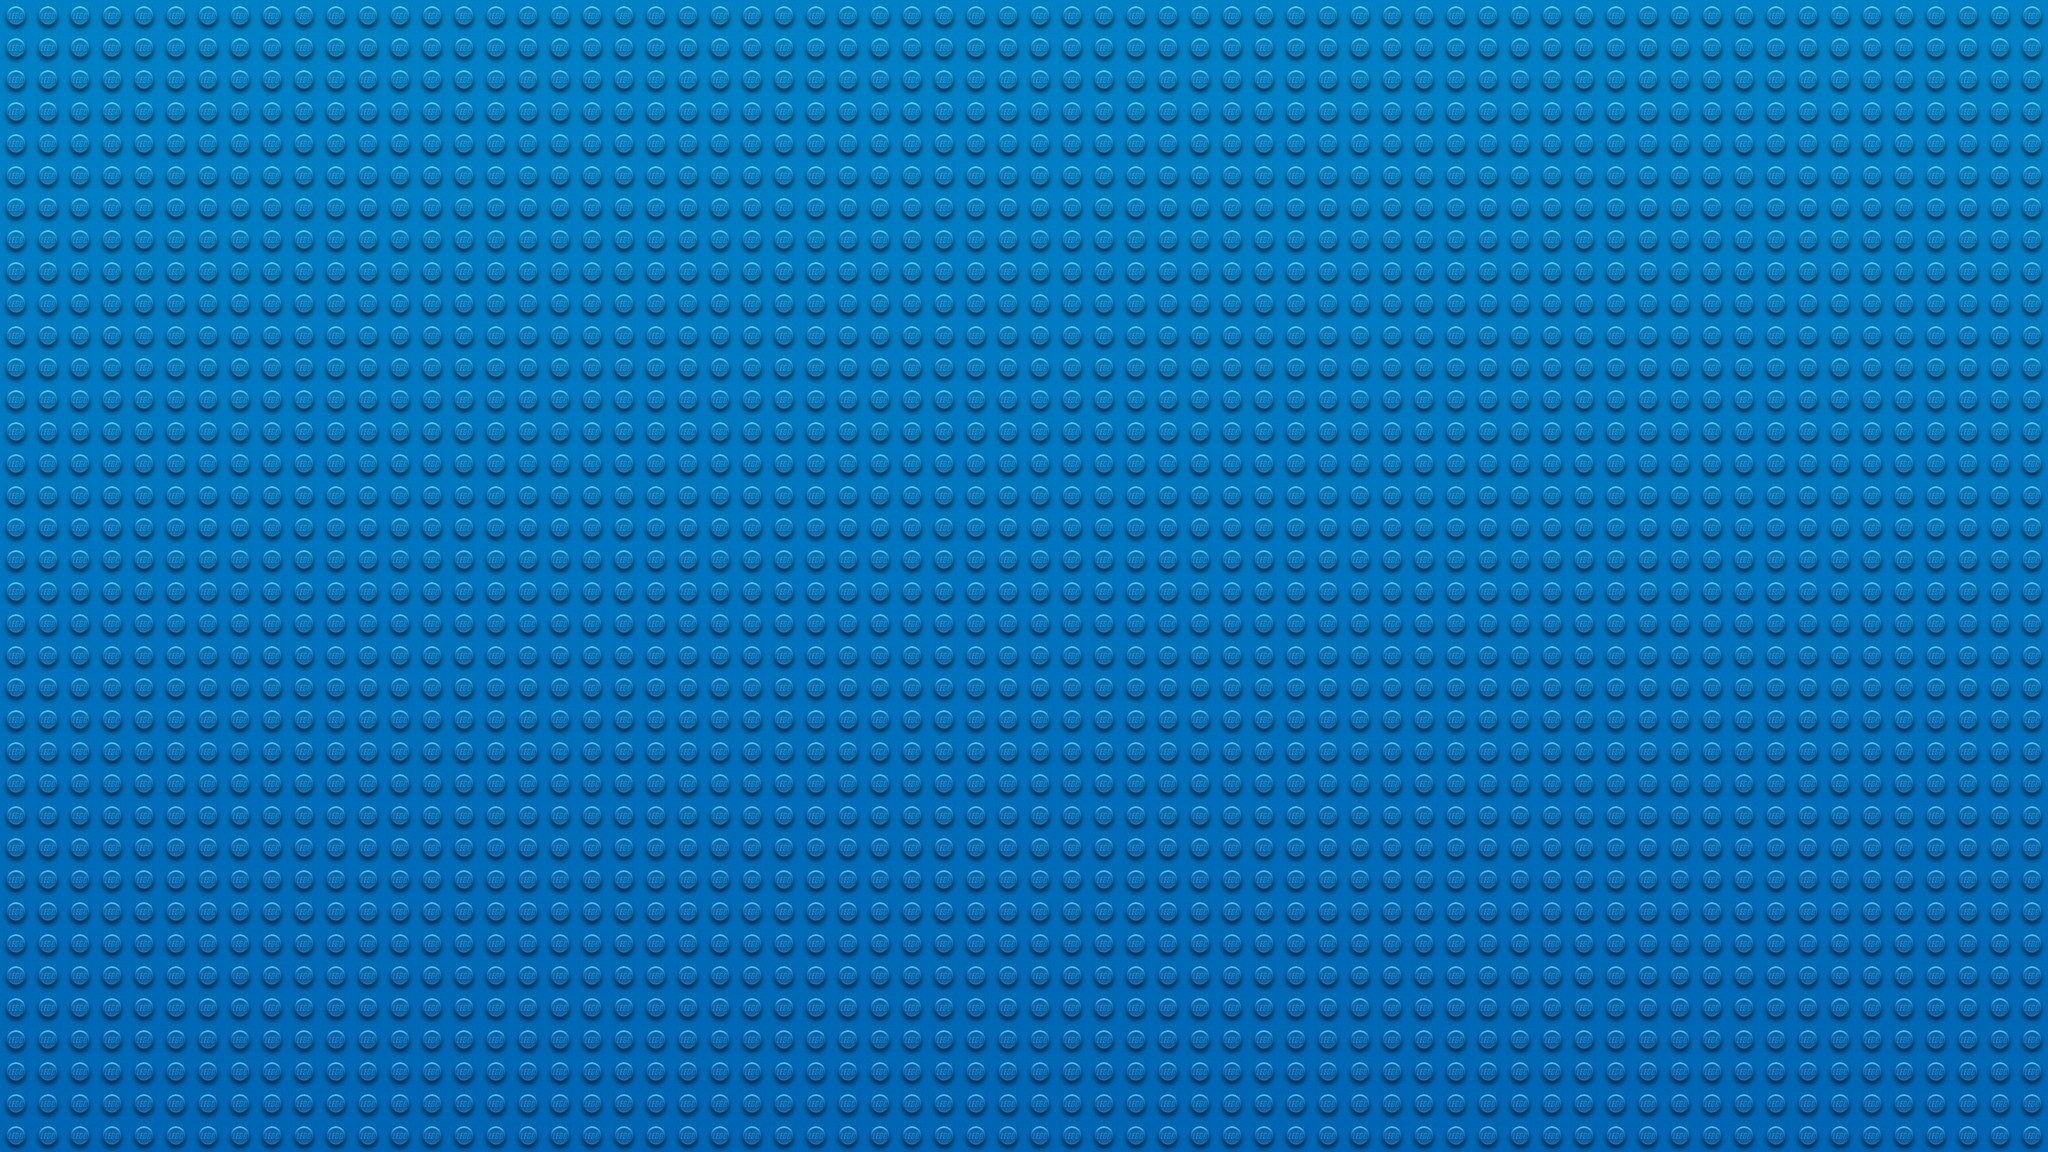 Lego Background 183 ① Download Free Cool Full Hd Wallpapers